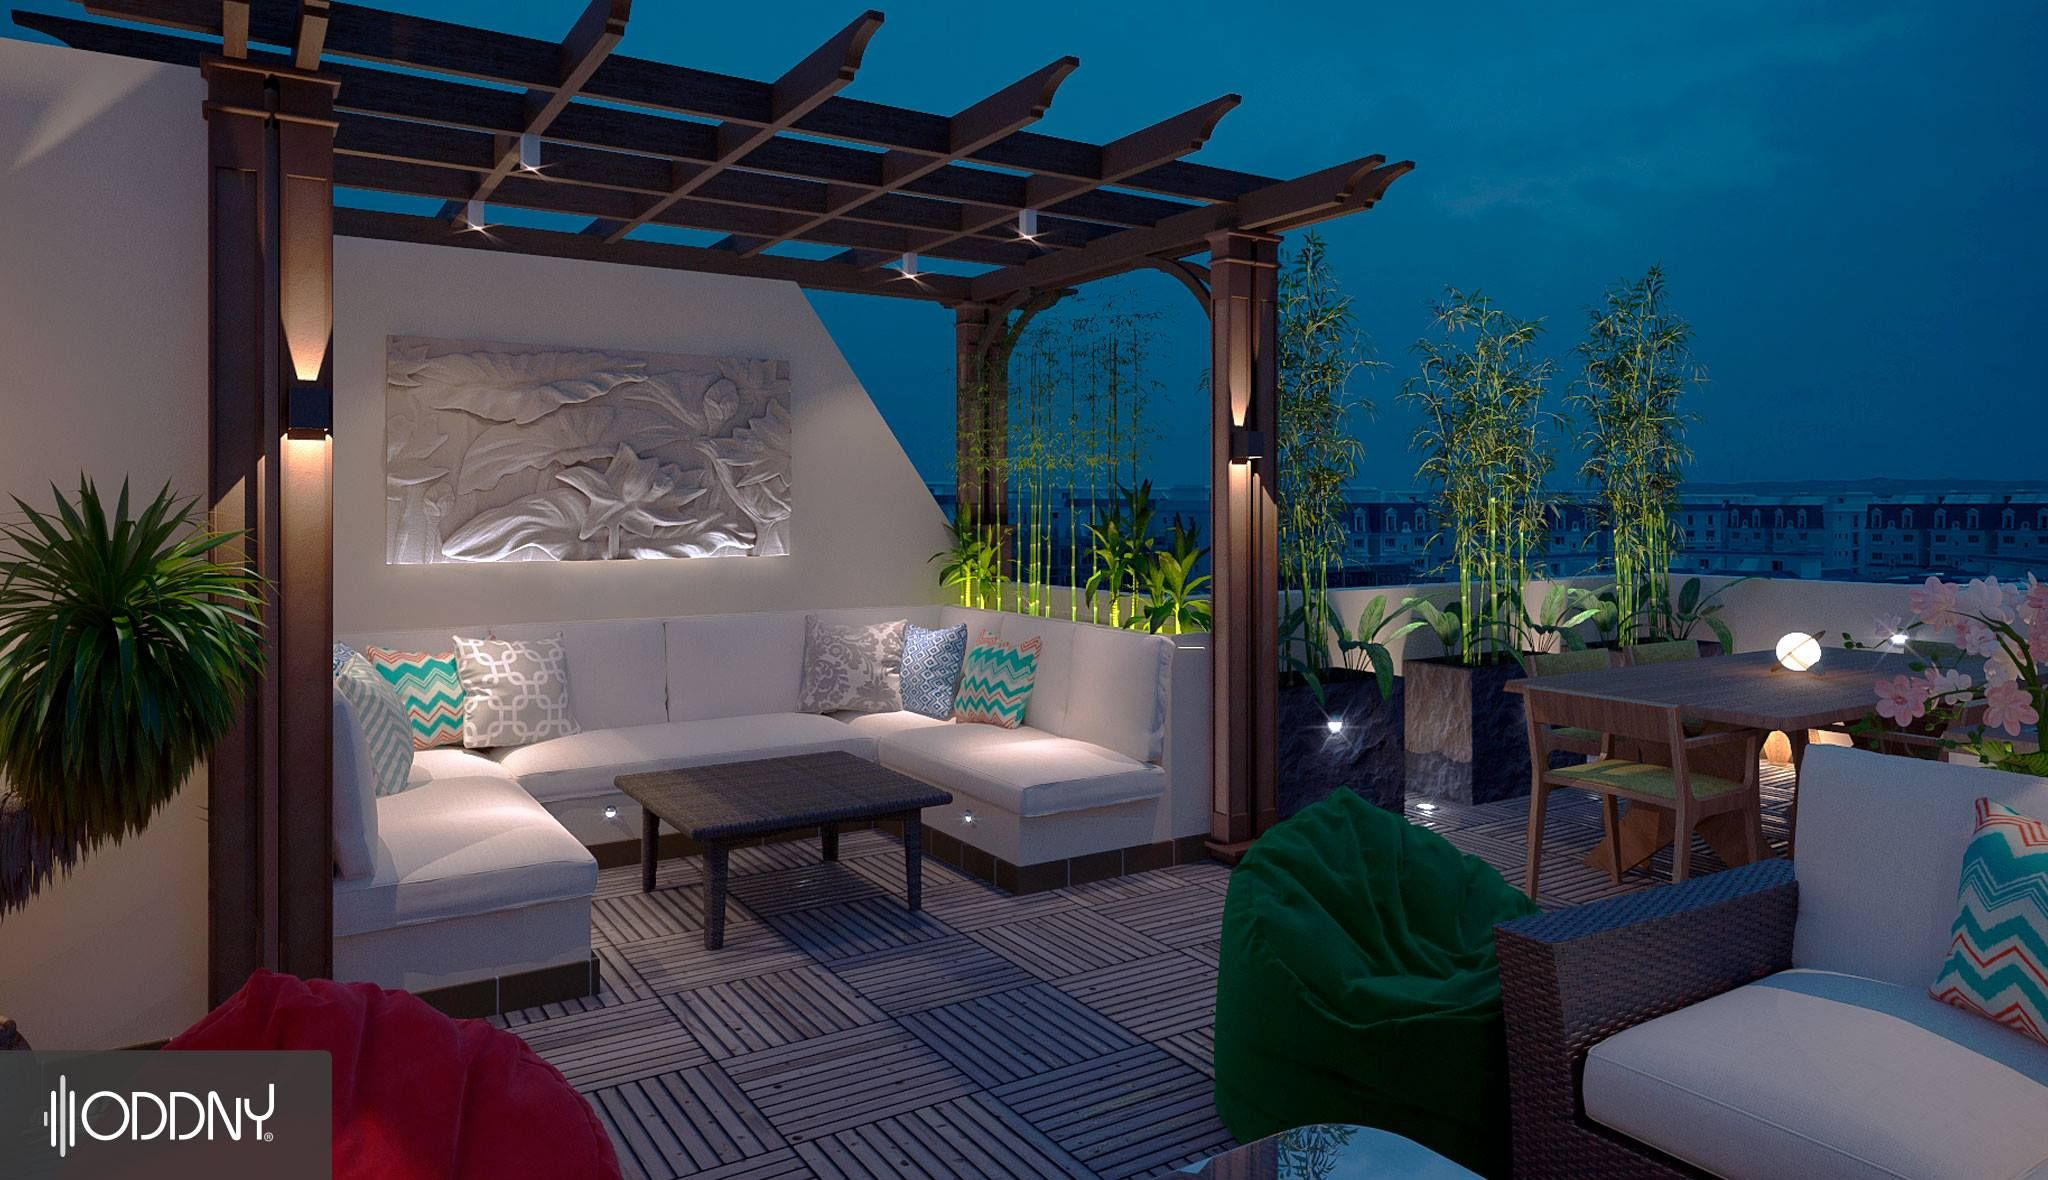 Cozy Rooftops By Oddny Design Studio The Best Standards Of Cost Time And Quality Oddn Studio Interior Residential Interior Design Creative Interior Design